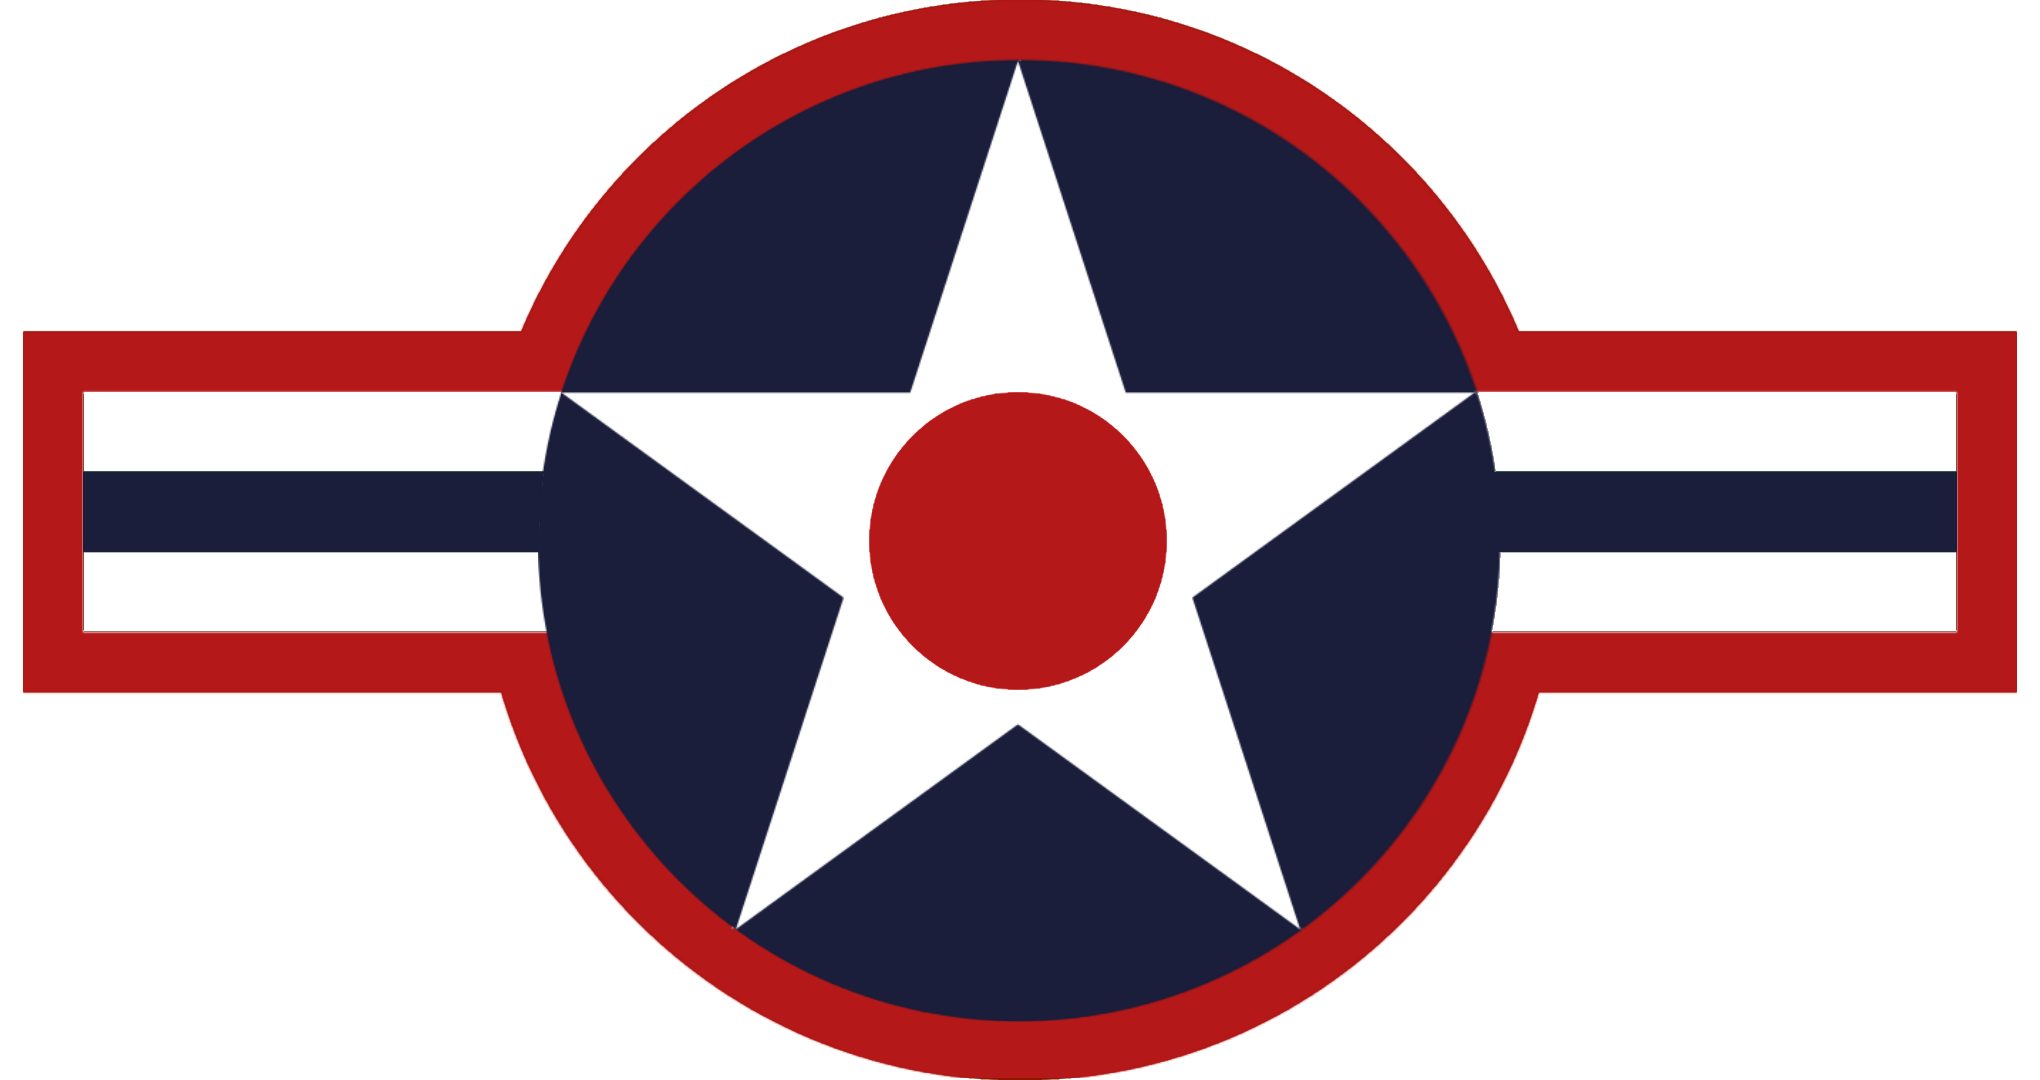 History clipart history united states. Air force roundels and